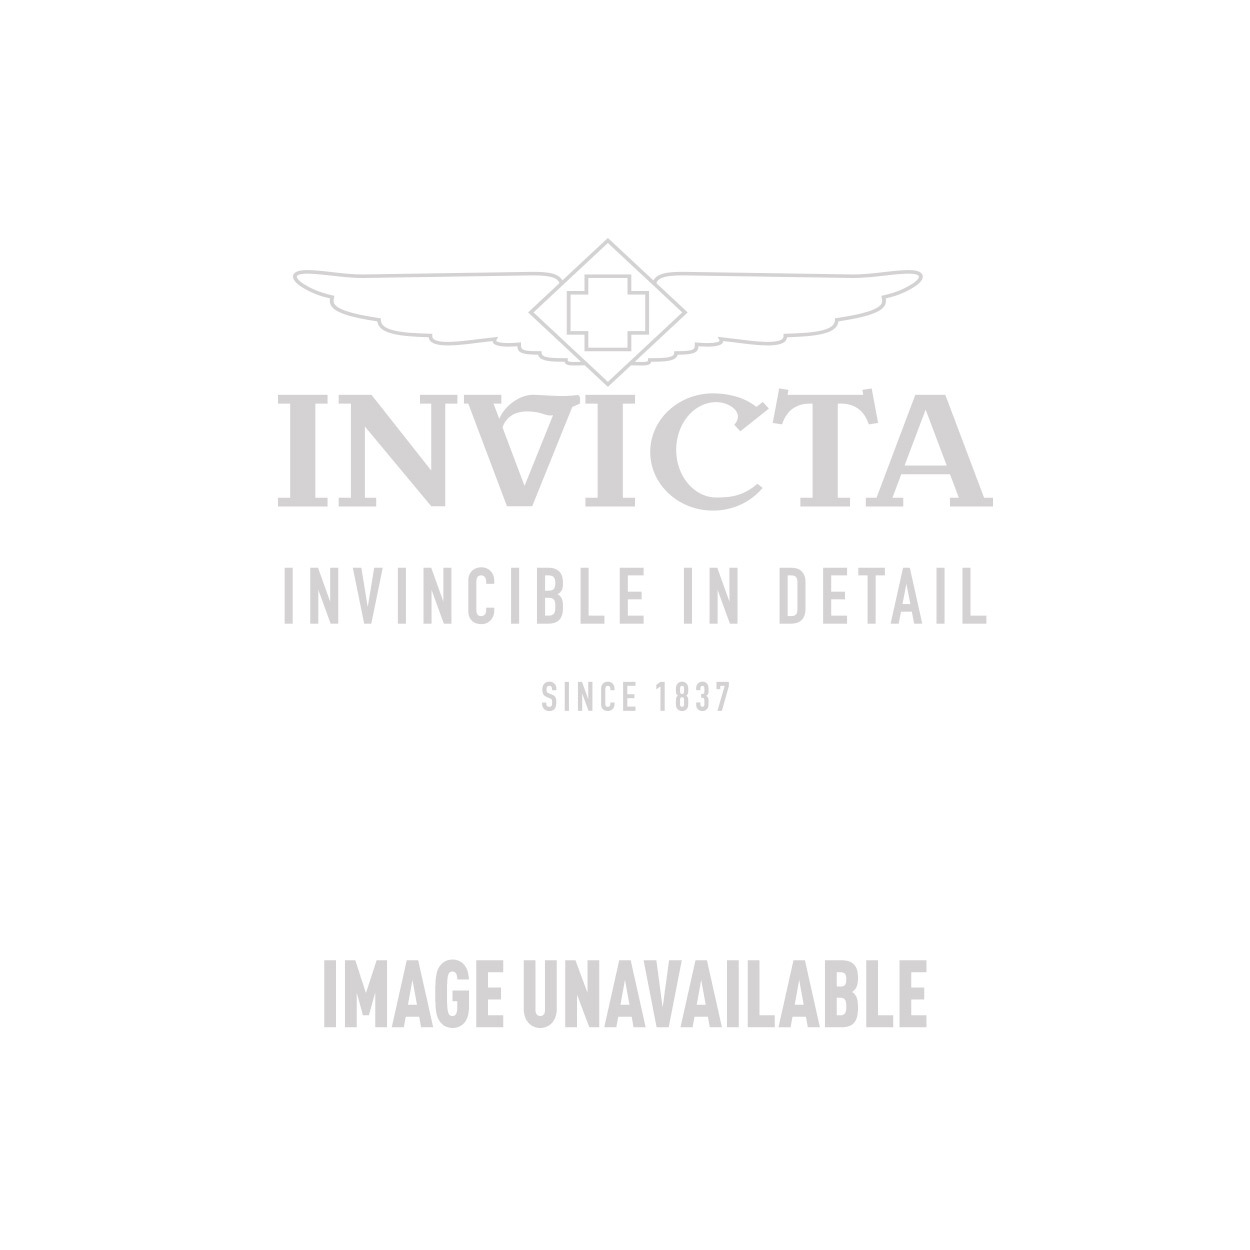 Invicta Specialty Quartz Watch - Gold, Stainless Steel case with Steel, Gold tone Stainless Steel band - Model 1015